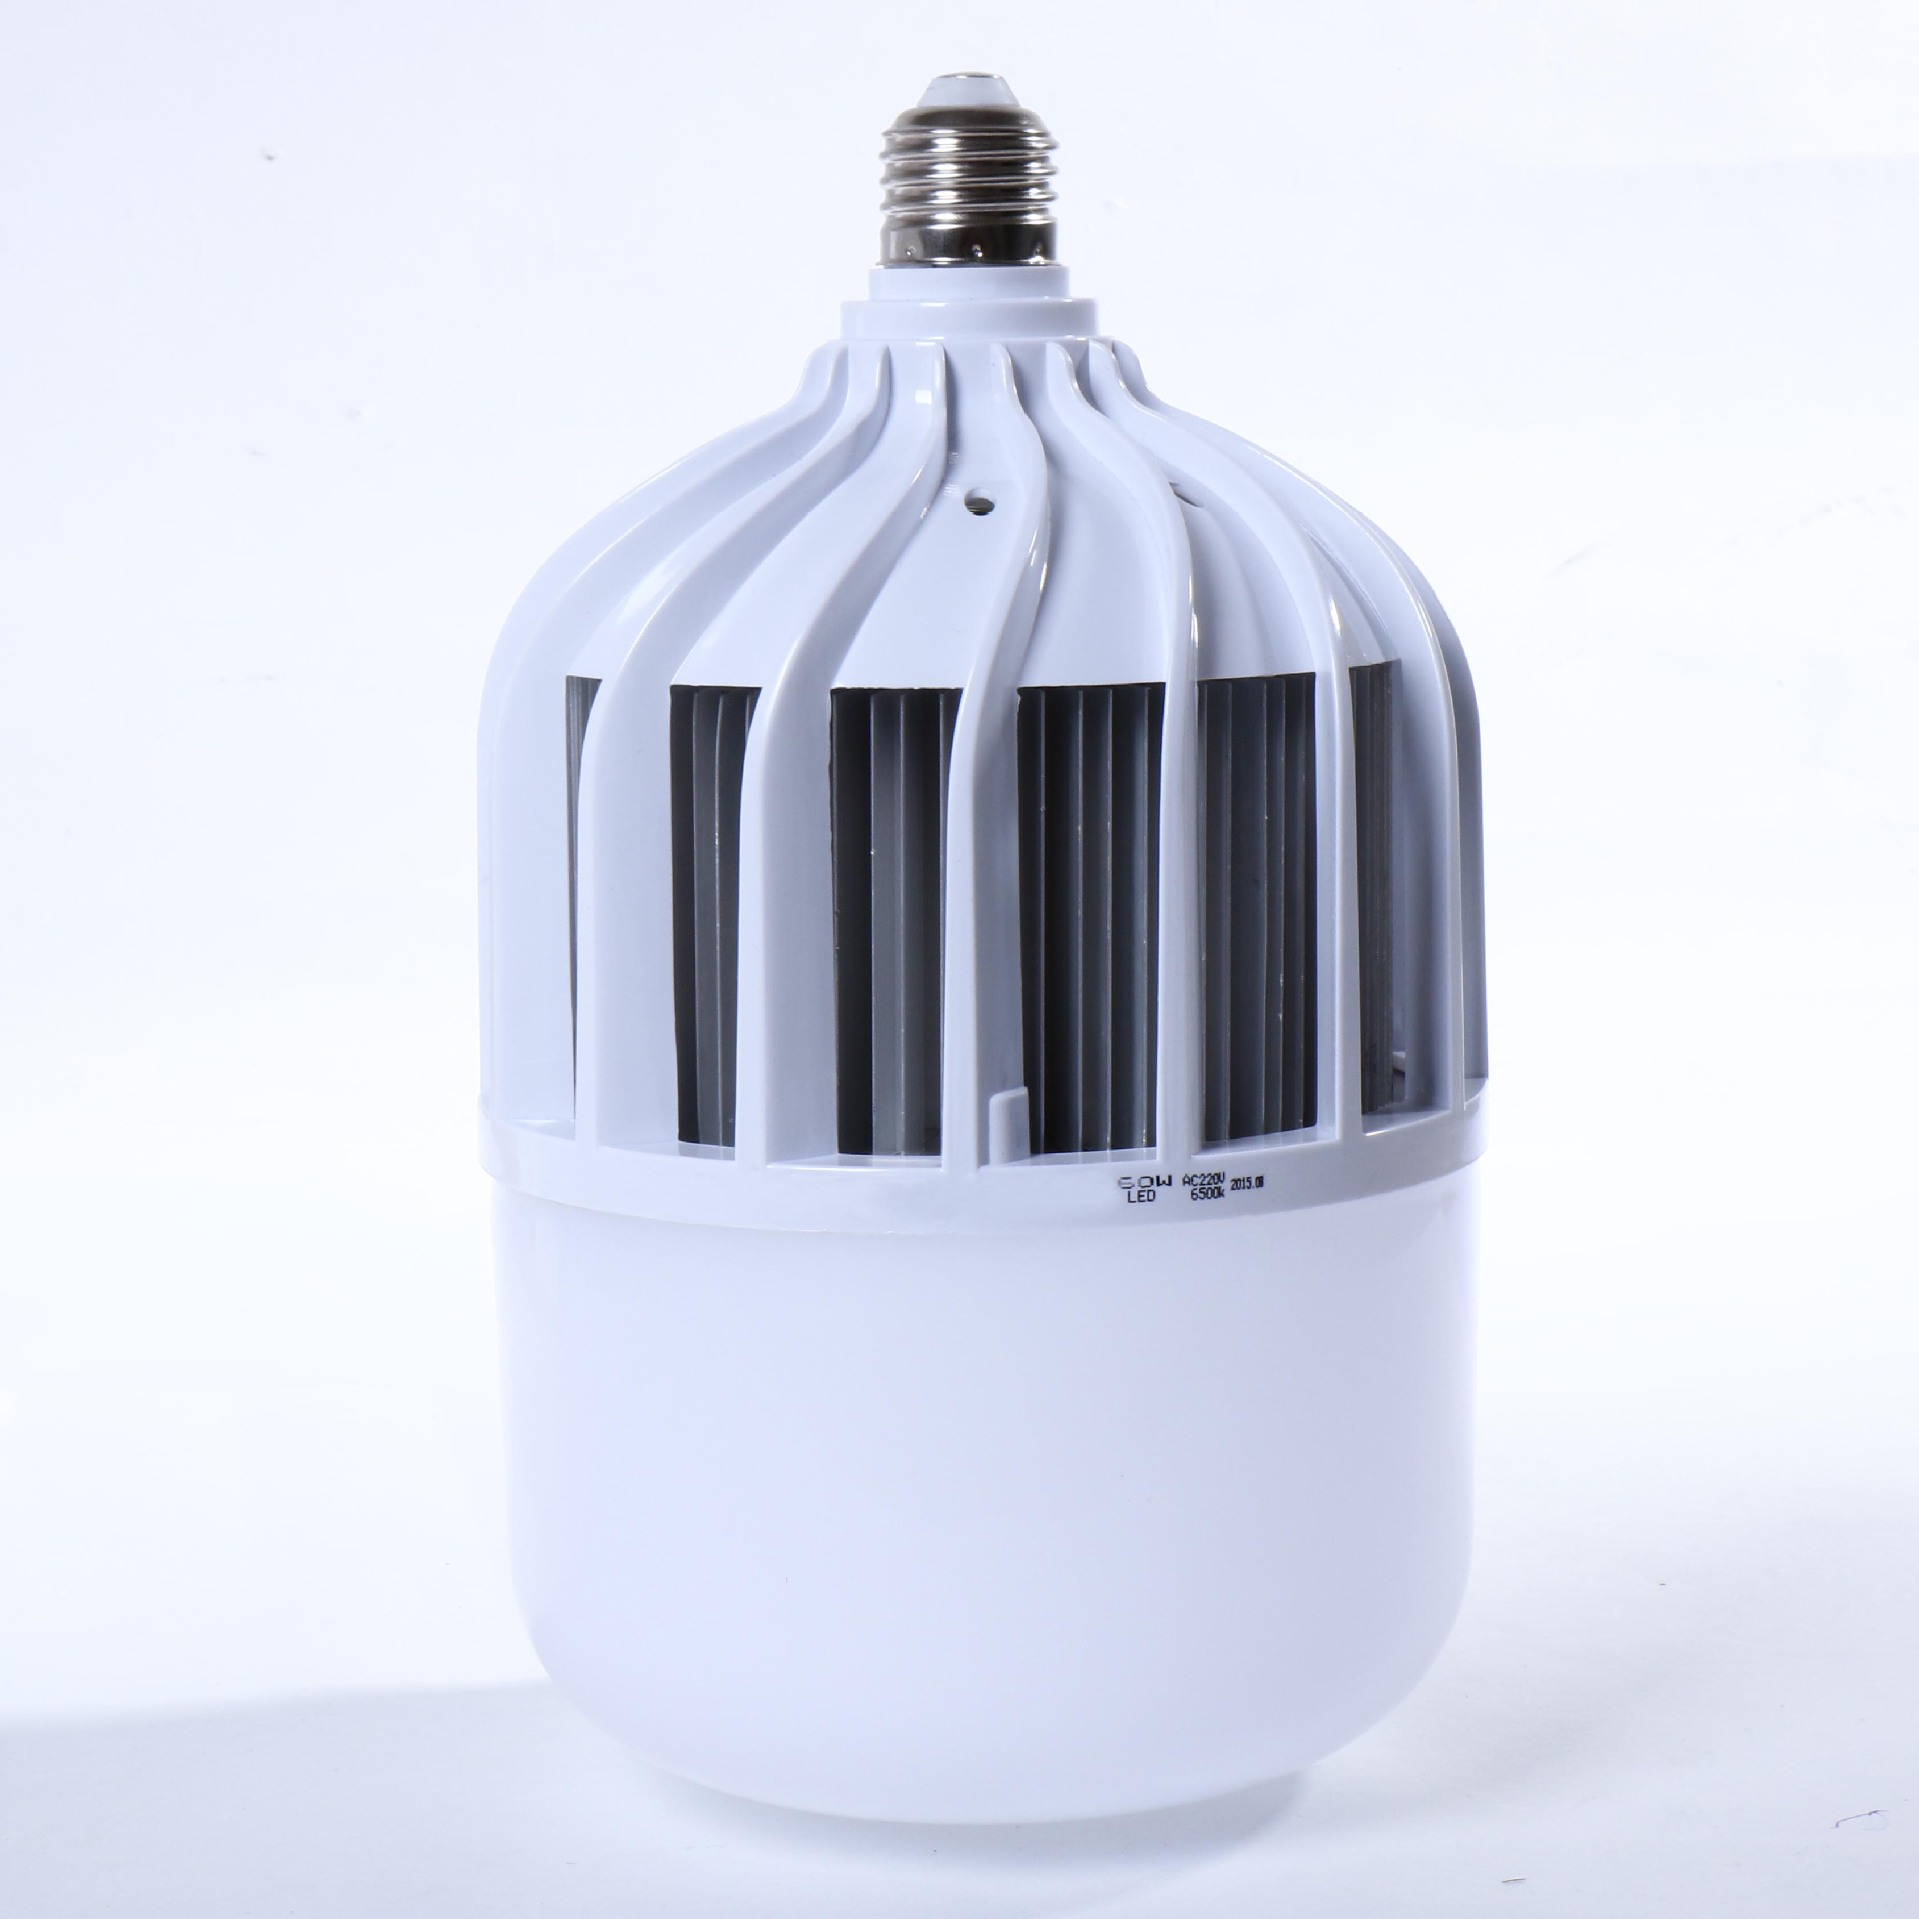 MRDENG High power LED lighting manufacturers selling cage projects bulb screw E27 light source lamp wholesale<br><br>Aliexpress